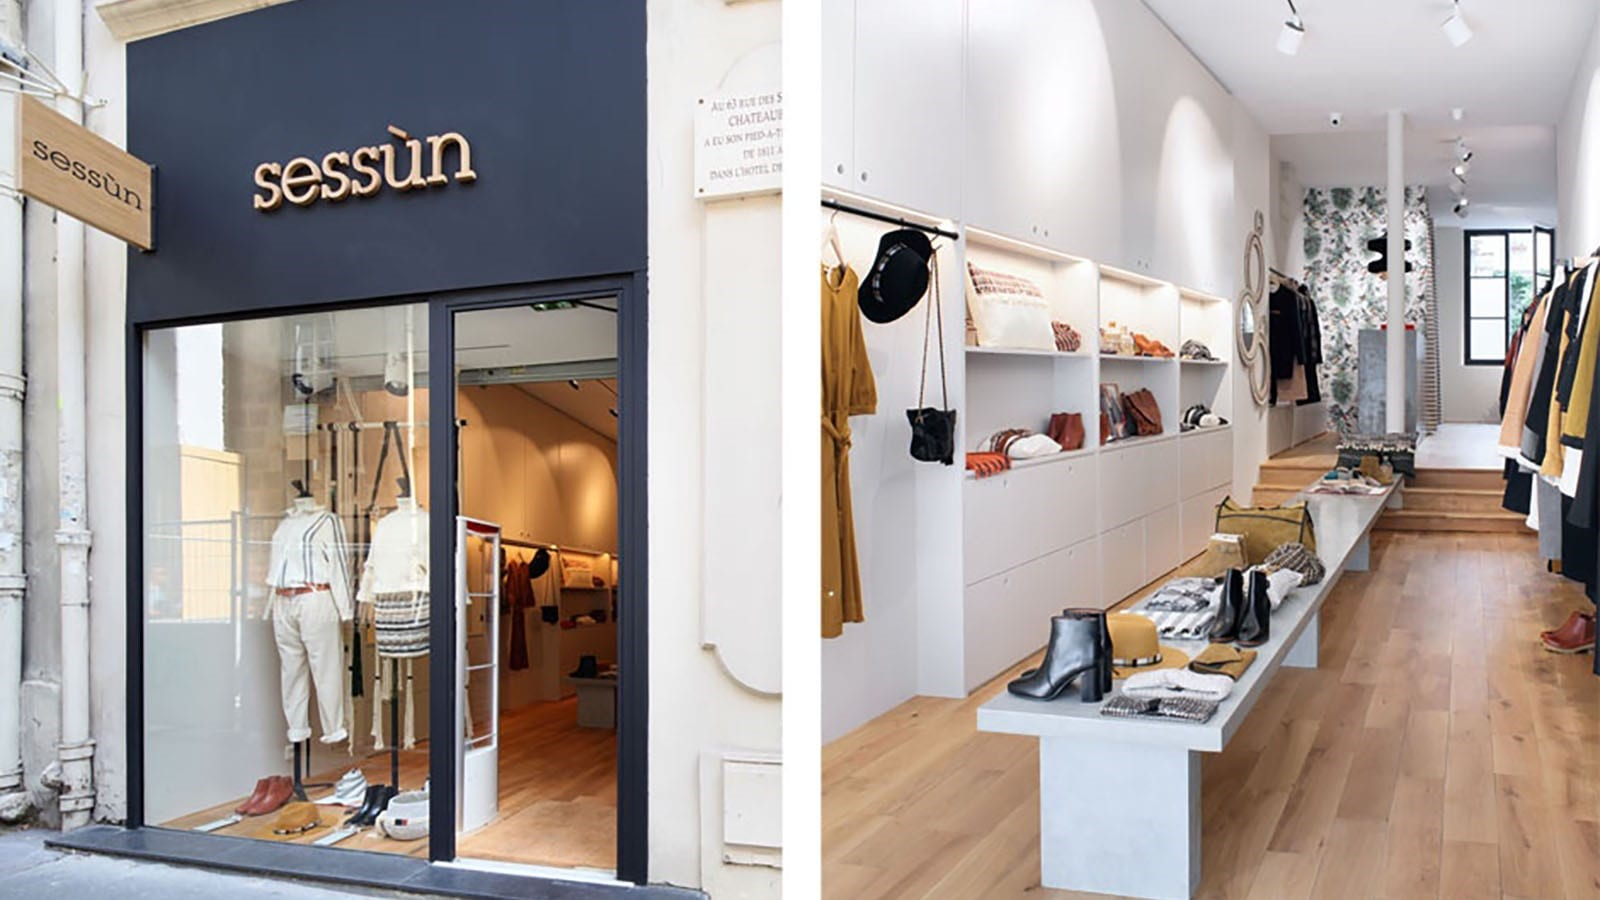 Boutique Sessun Paris Saint Germain Efi Design (3)